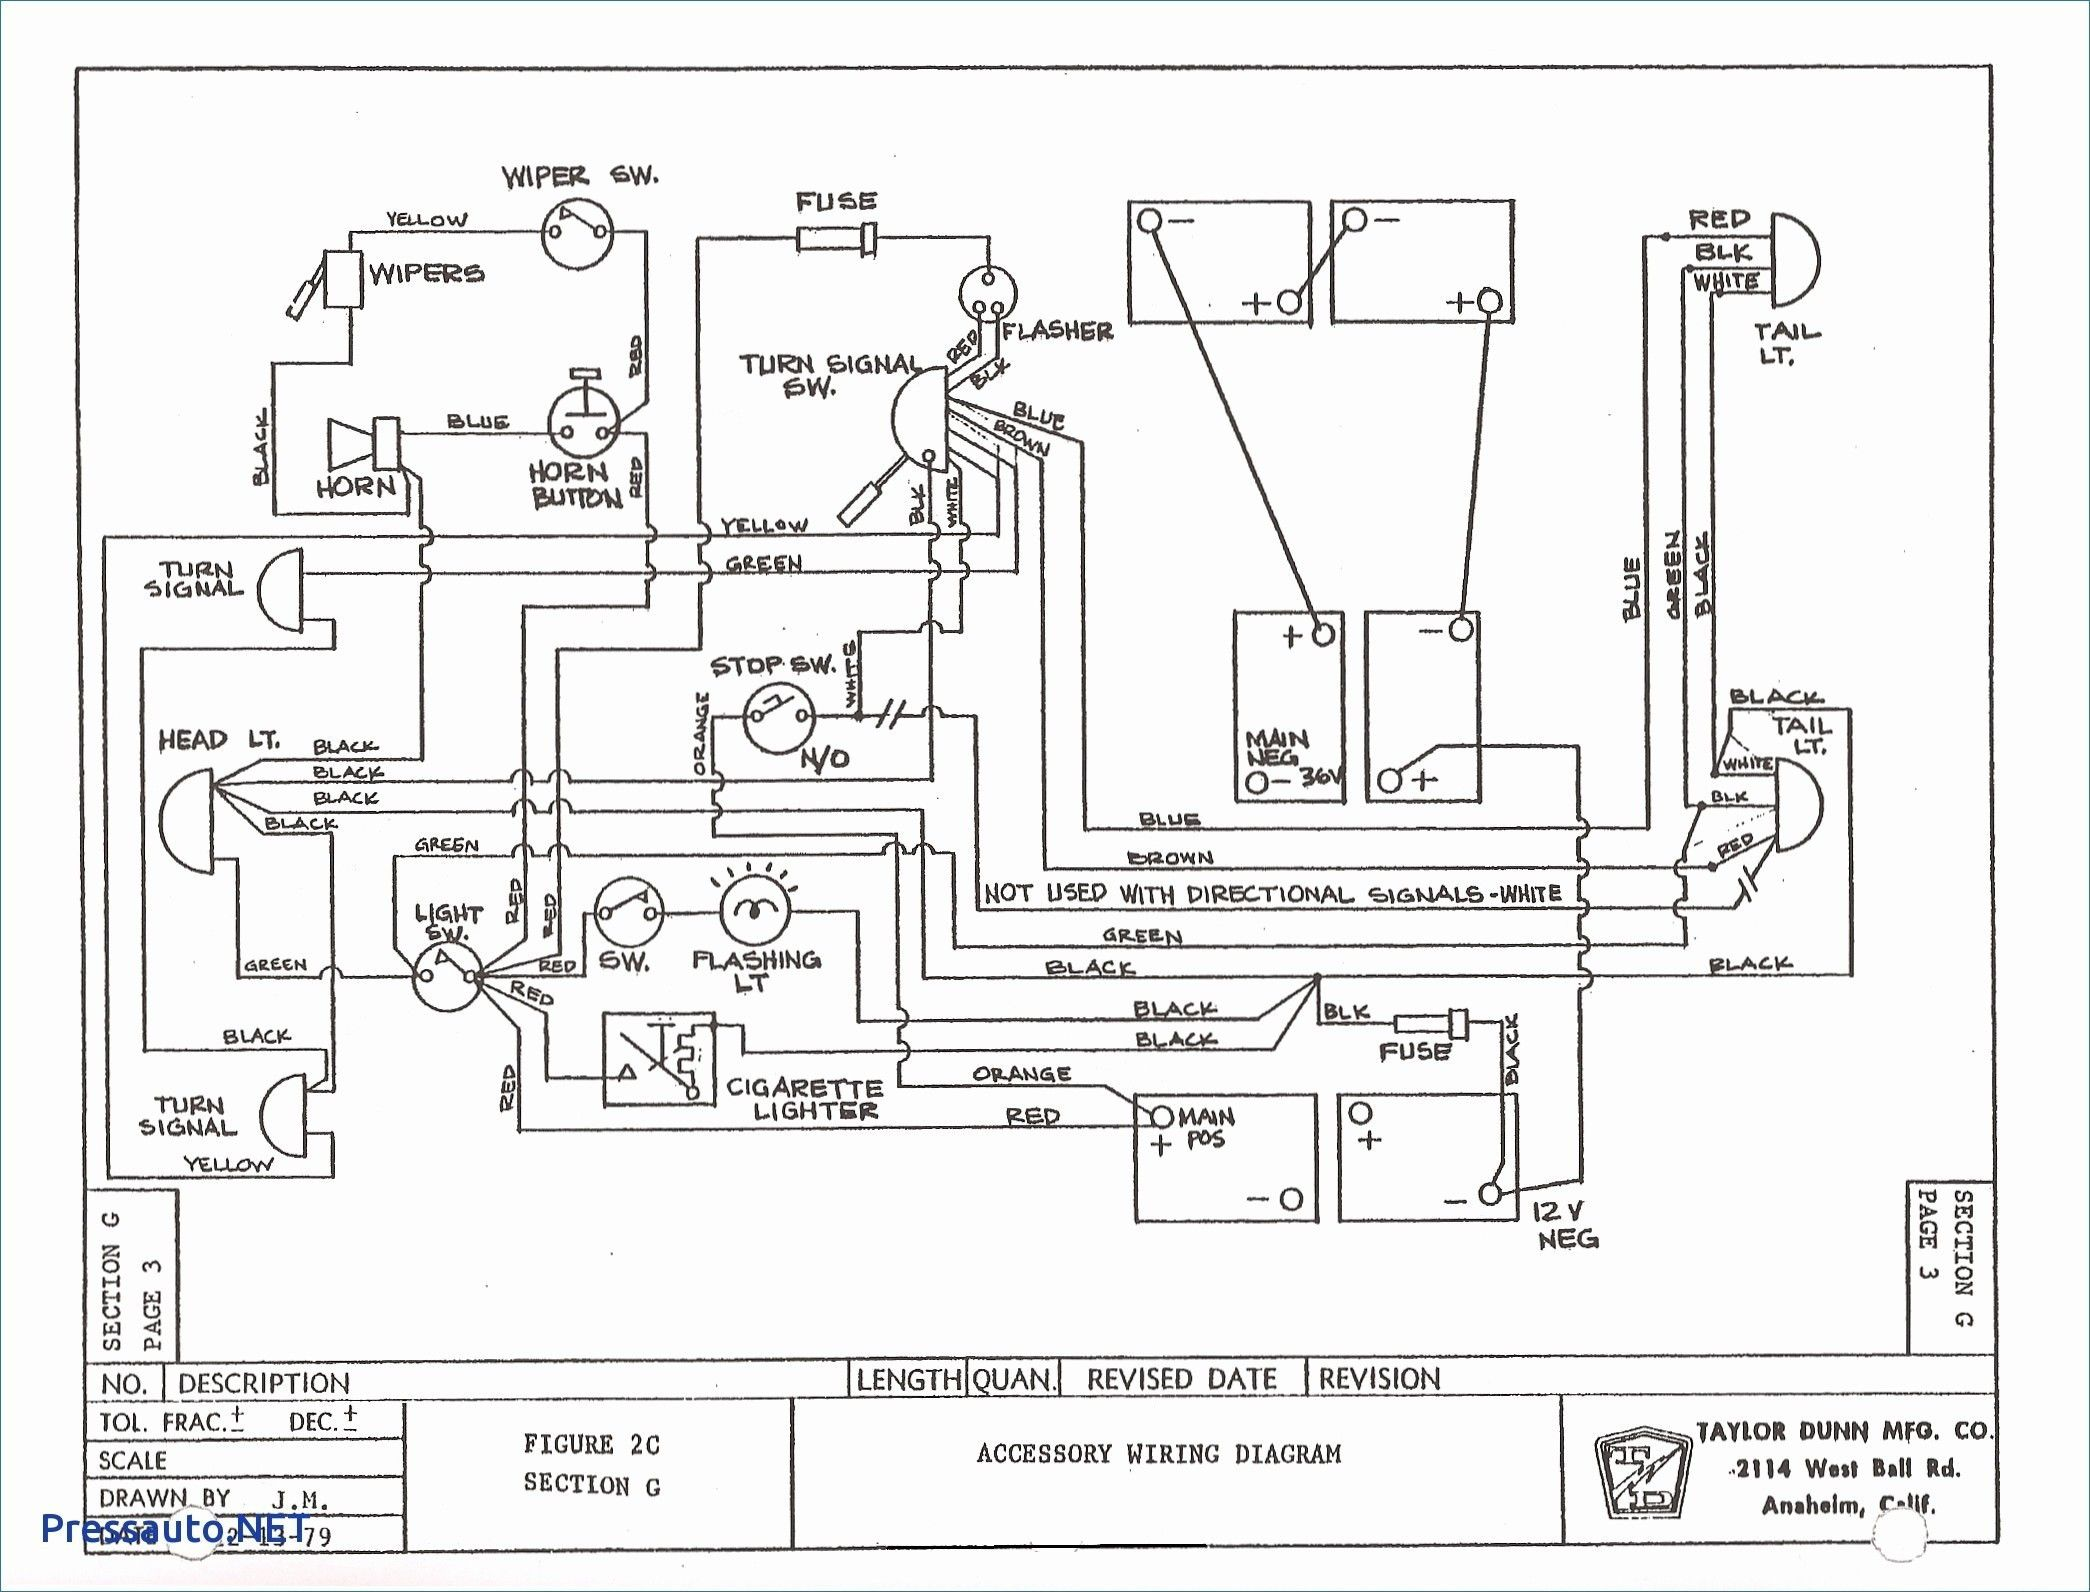 Keystone Rv Wiring Diagrams / How To Replace A 12v Water Pump In An Rv /  Variety of keystone rv wiring schematic. - wiring diagram   Springdale Rv Wiring Diagram      wiring diagram